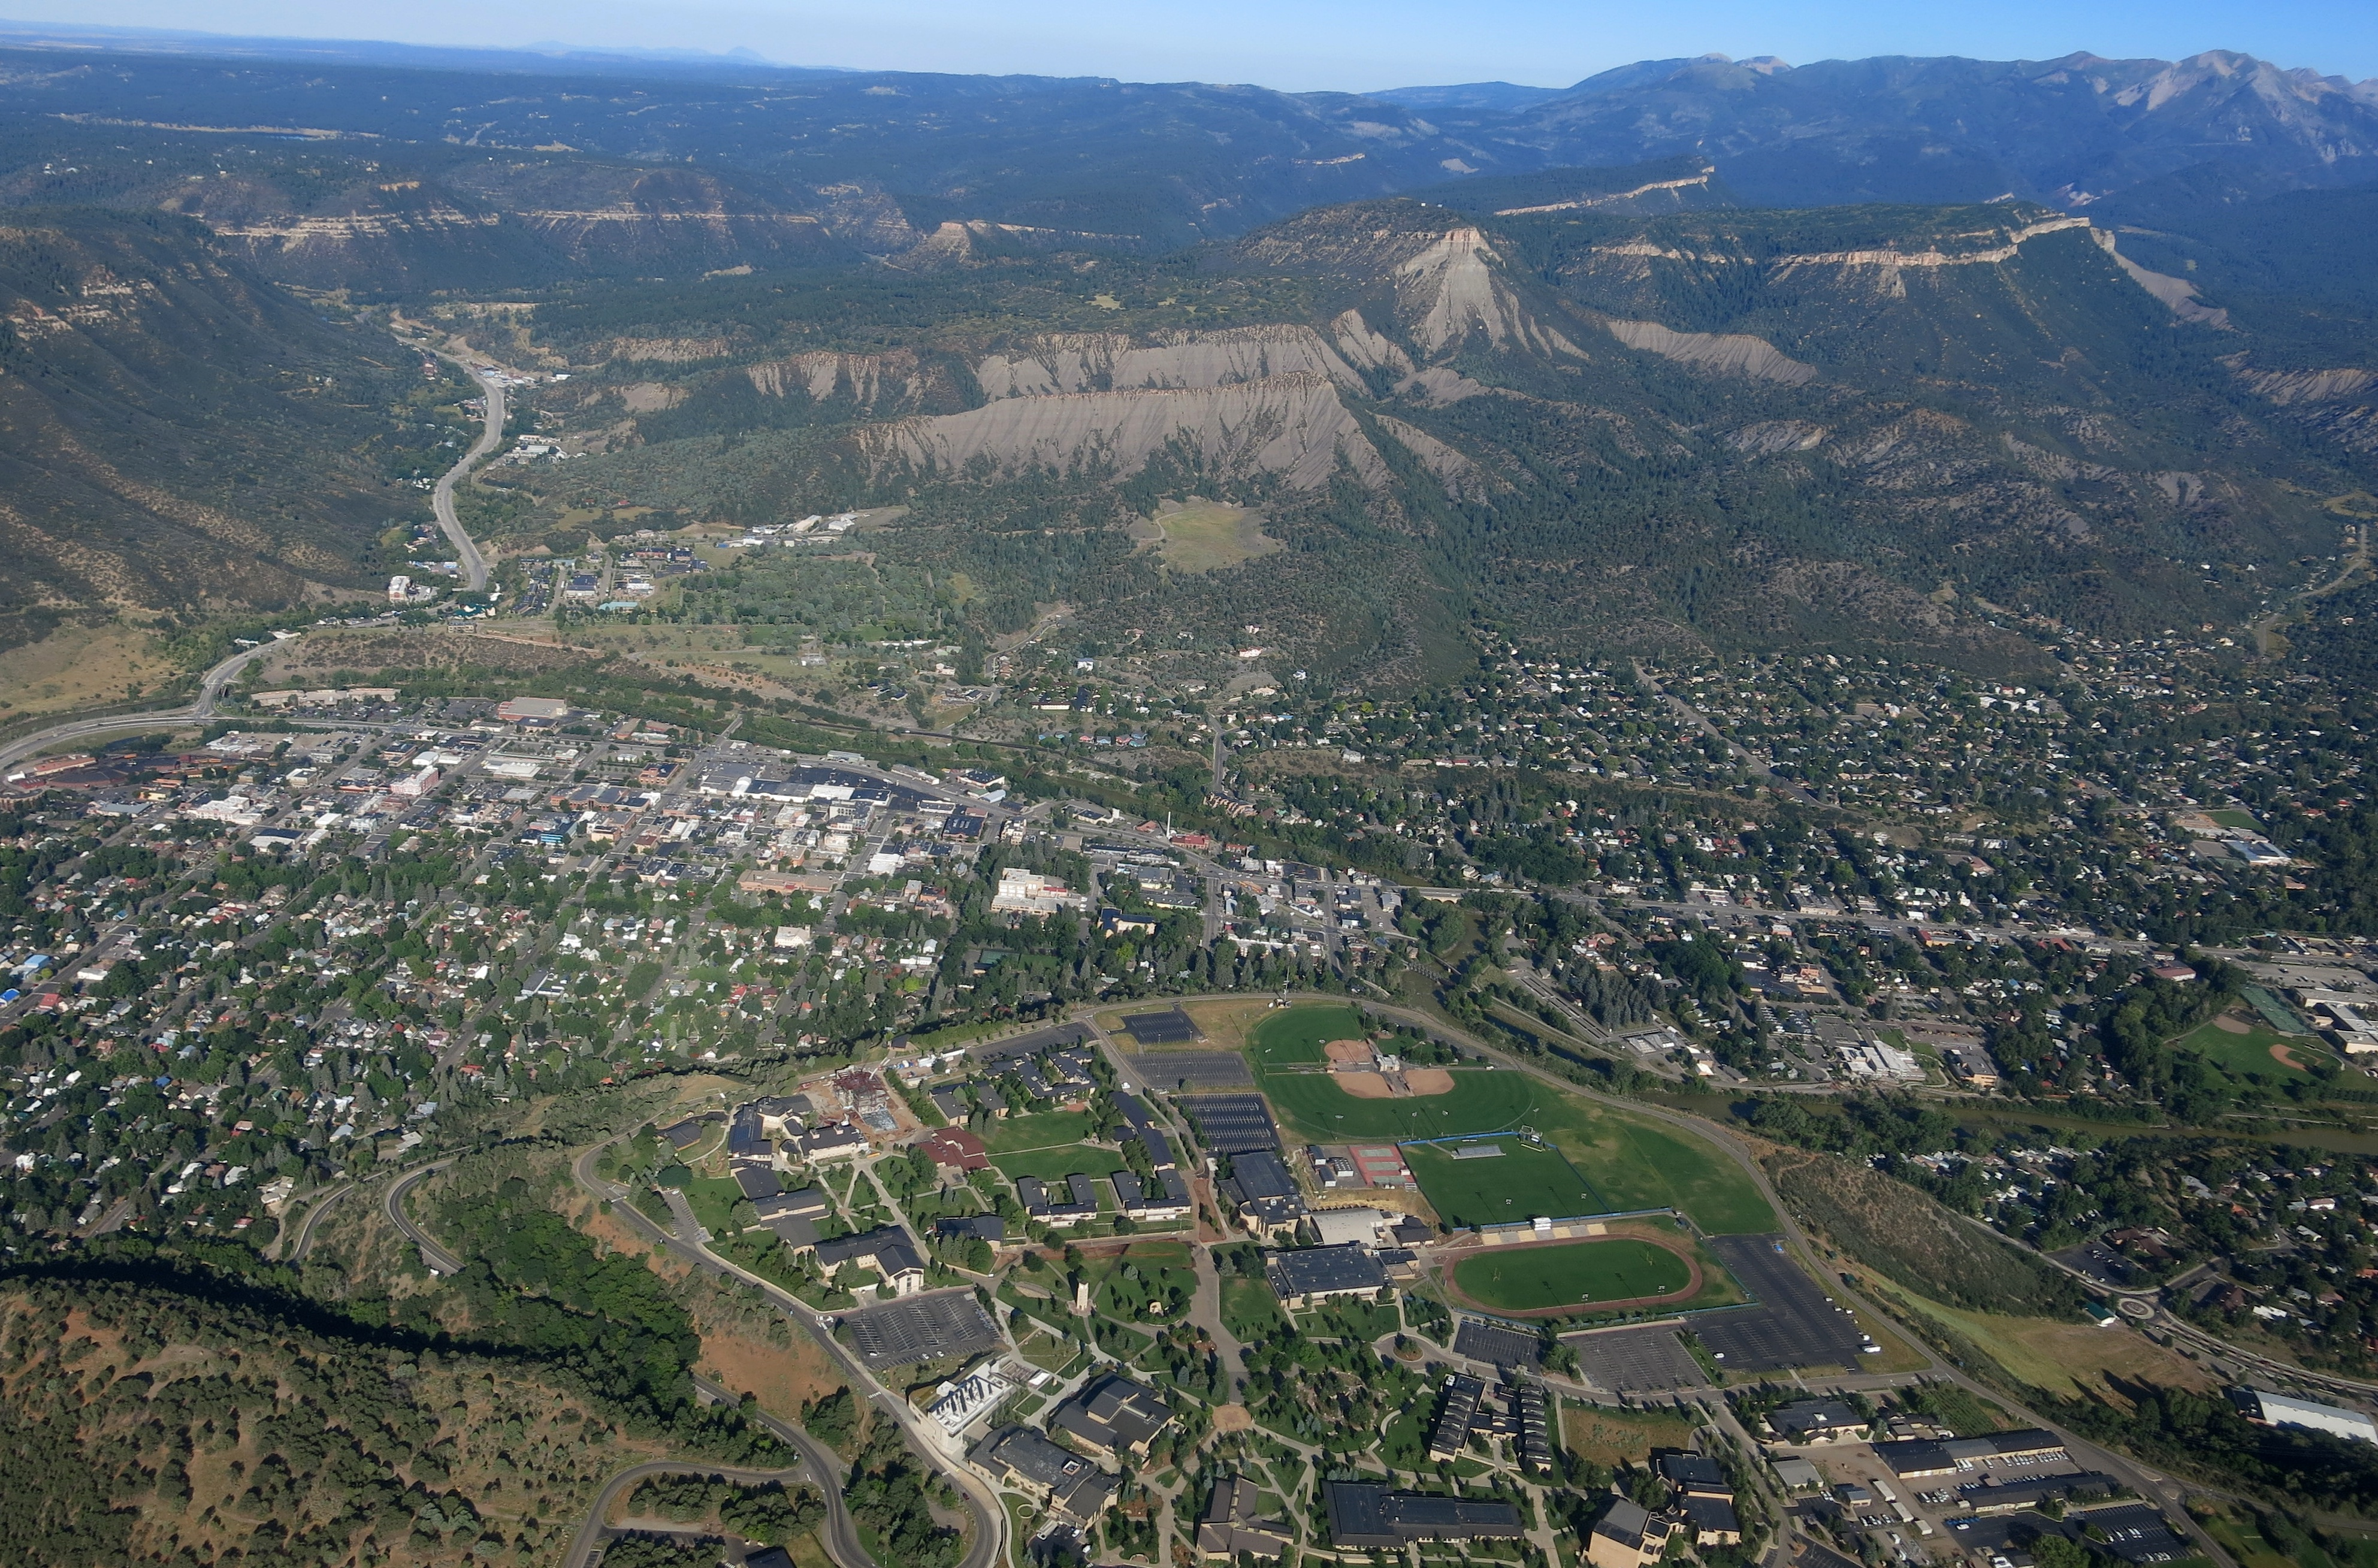 Durango on Aug. 9, 2015. The Animas River flows through the city.